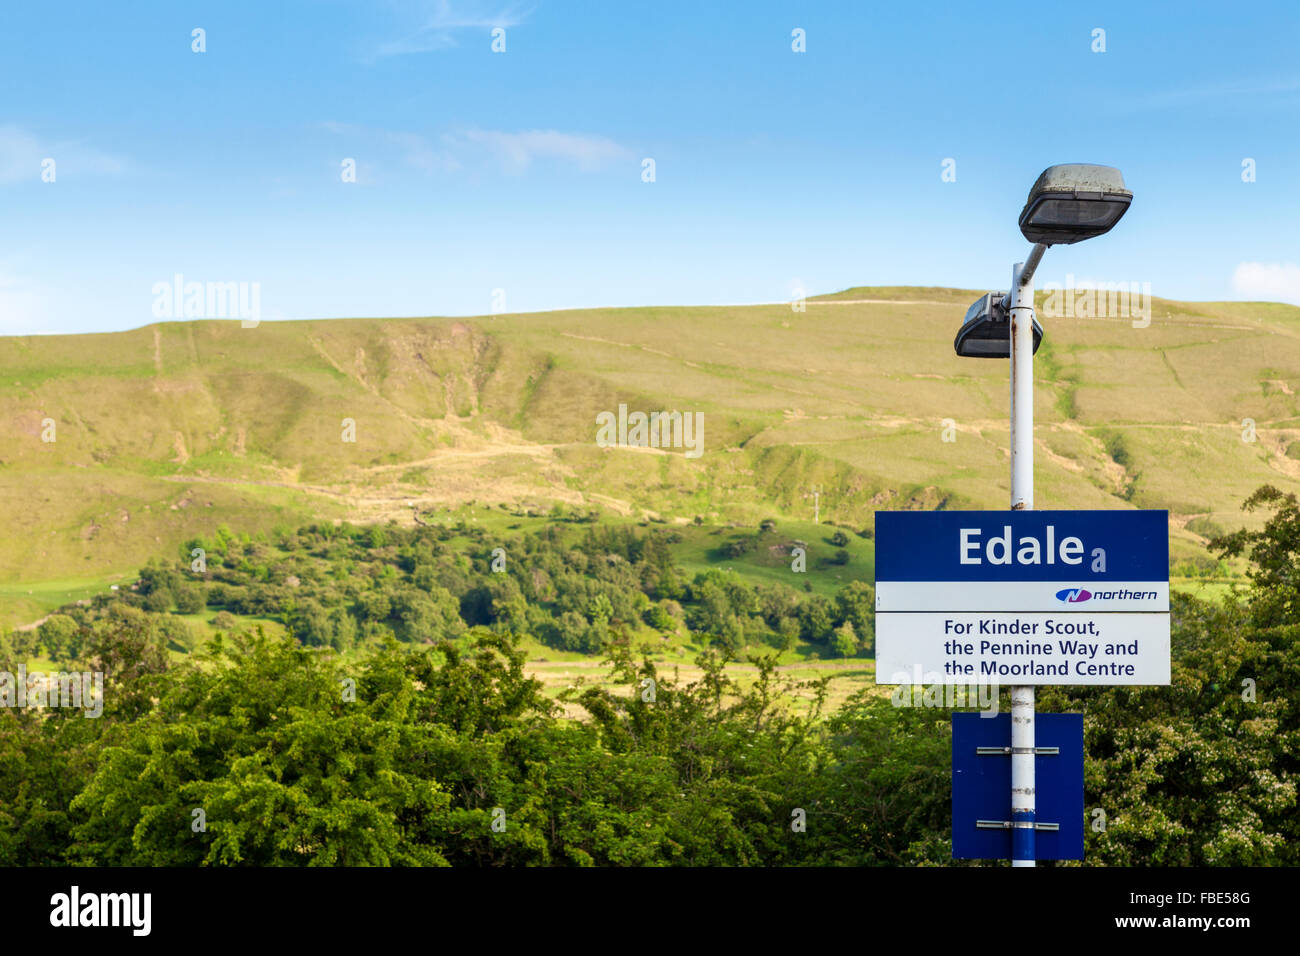 Sign for Edale Railway Station, Derbyshire, England, UK with Mam Tor in the distance. - Stock Image